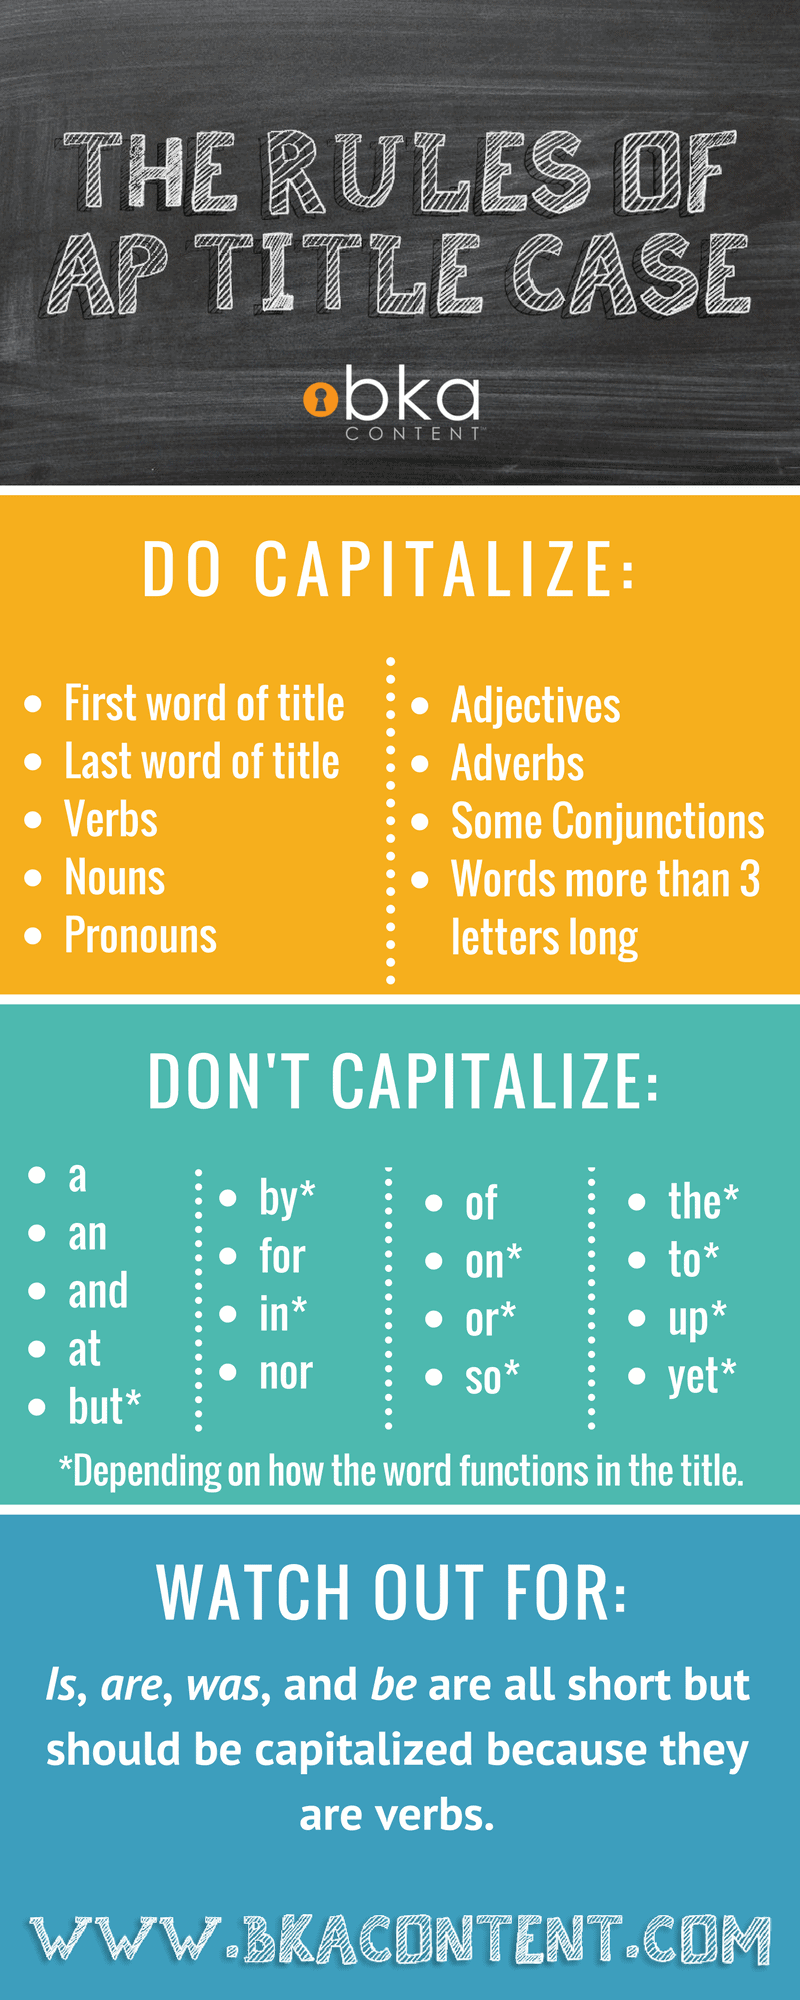 Capitalize Each Word In Word : capitalize, Correctly, Style, Title